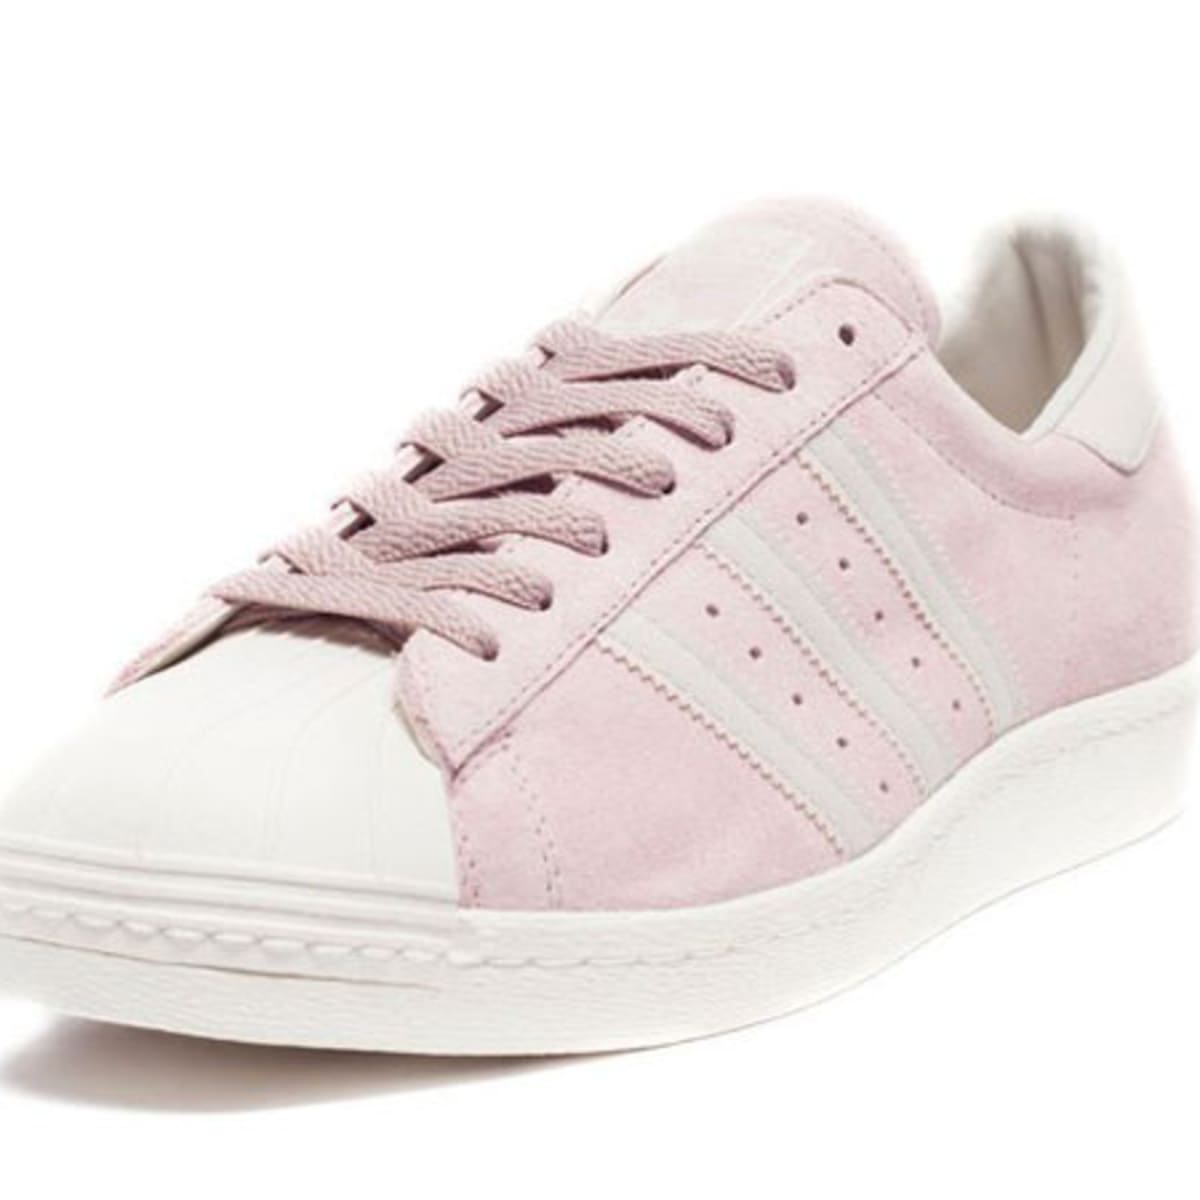 adidas superstar dusty pink